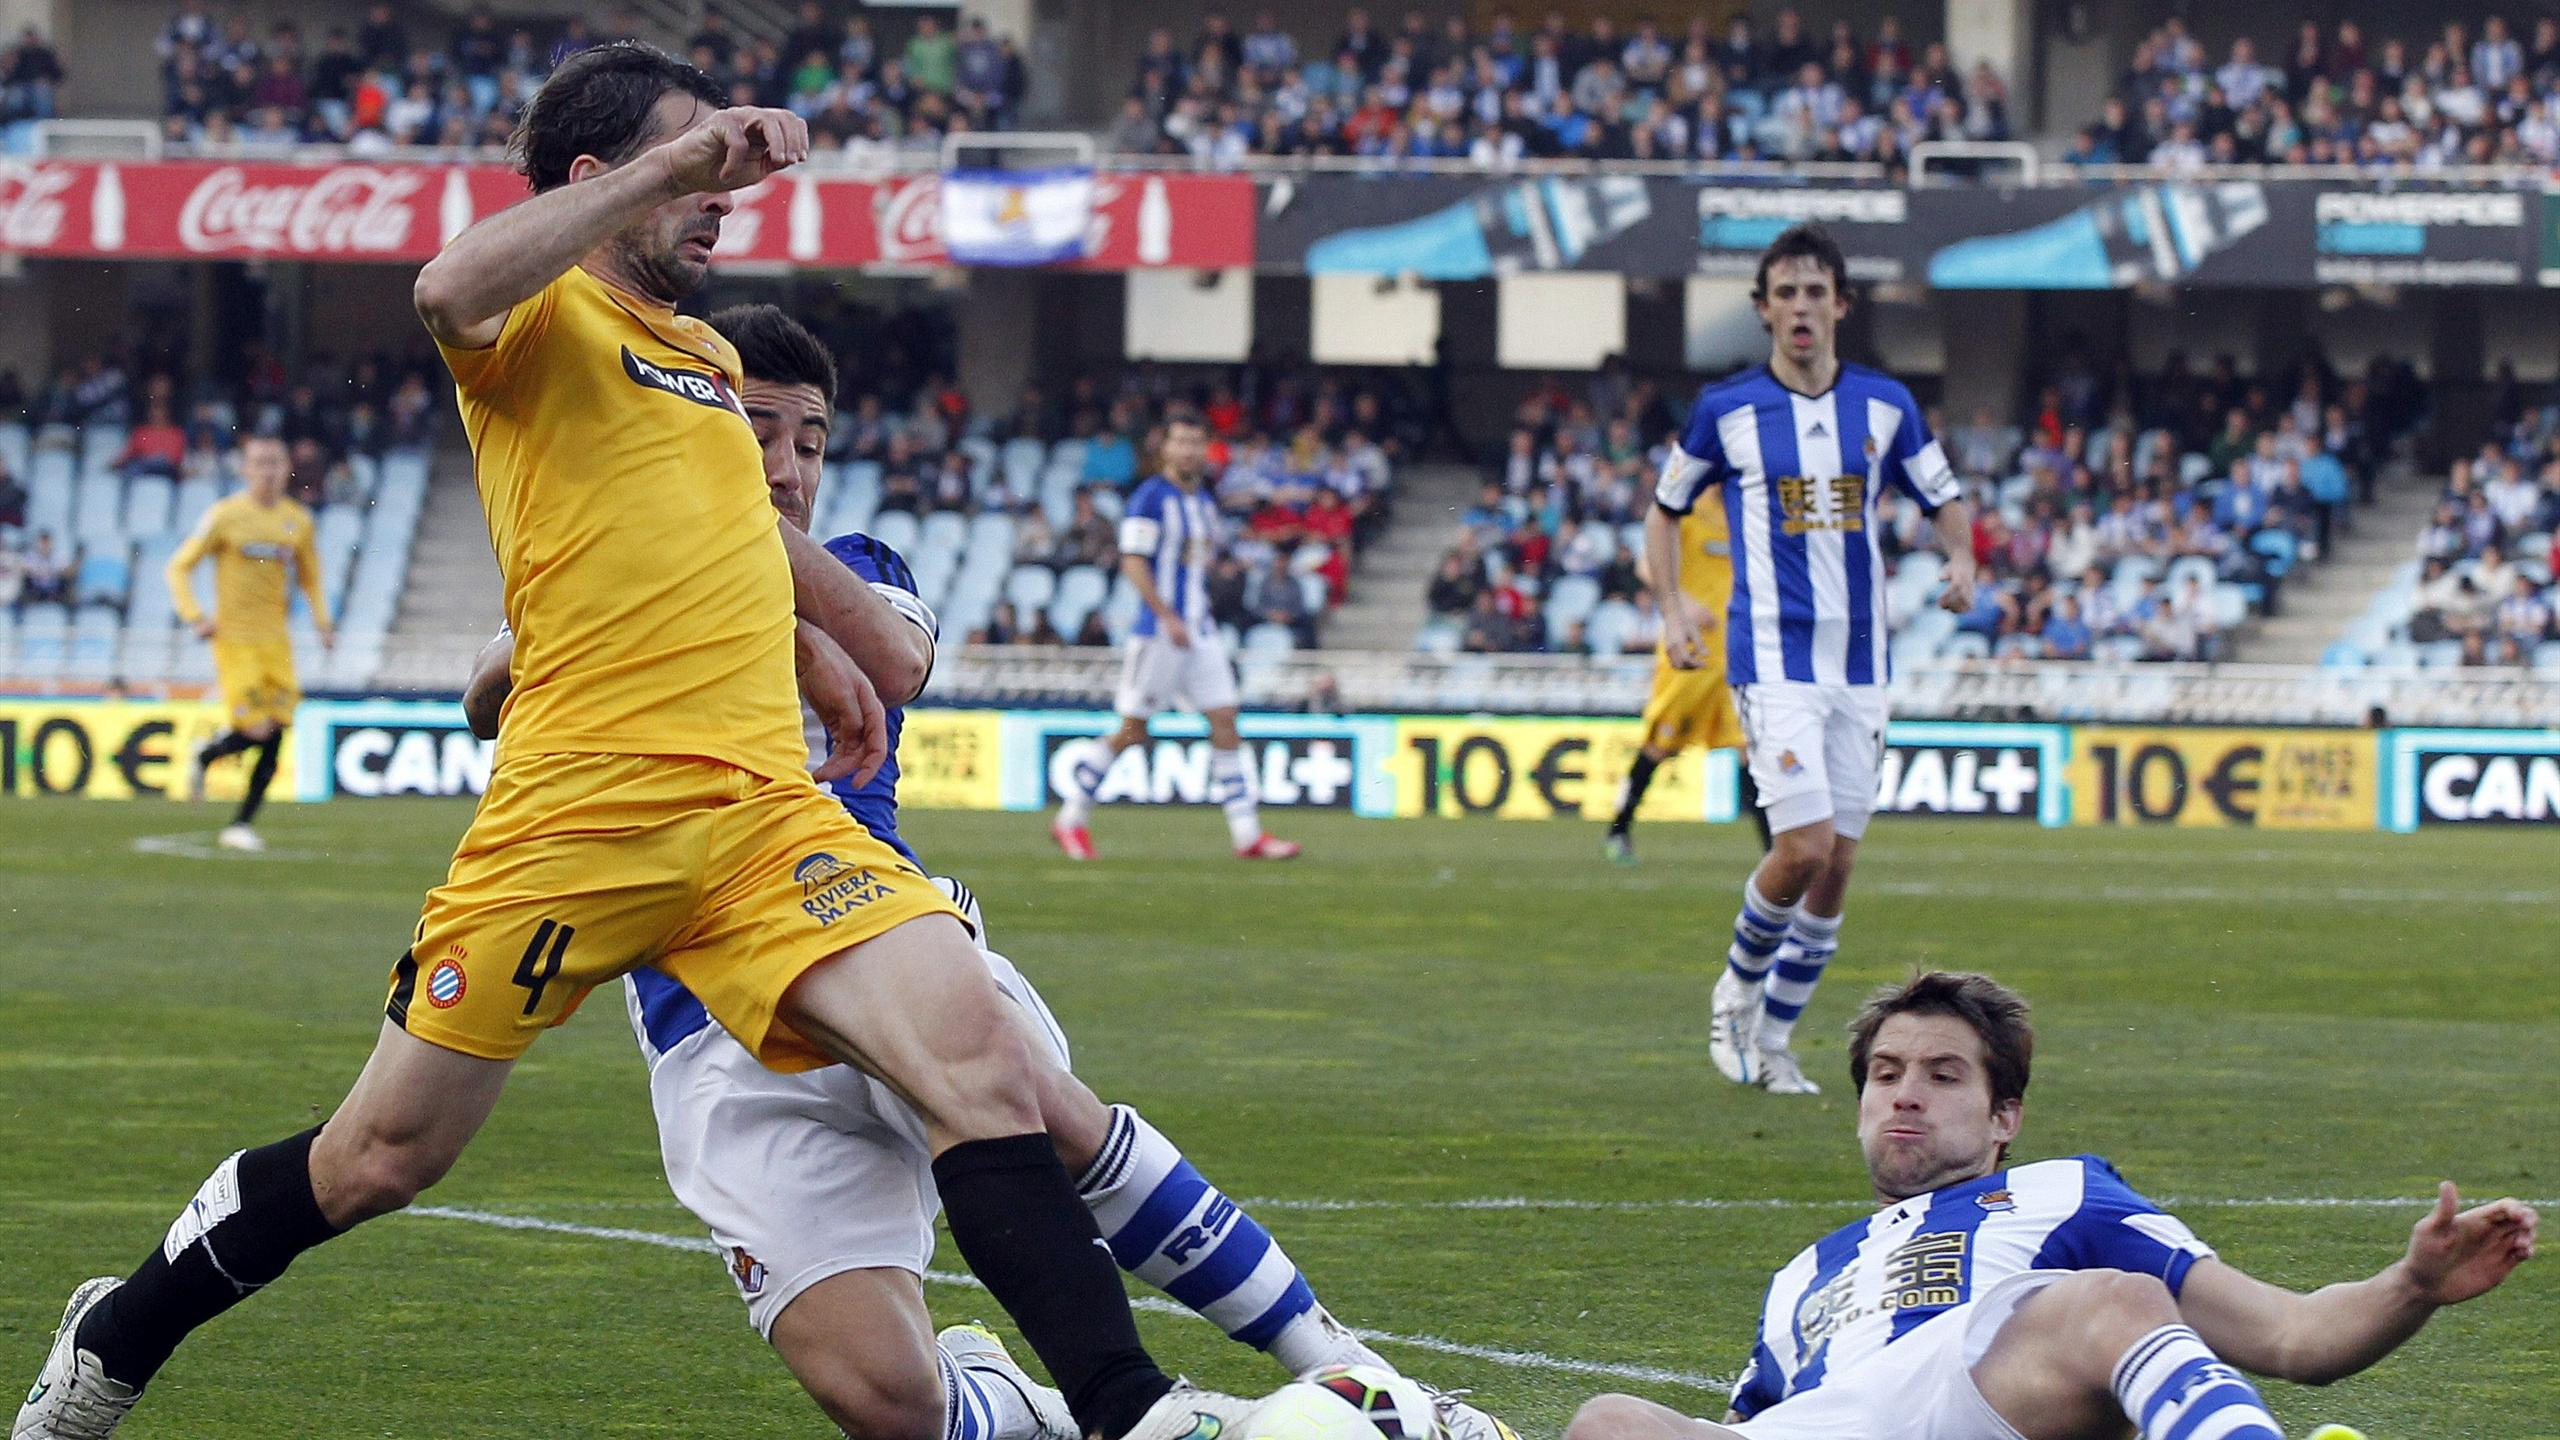 Video: Real Sociedad vs Espanyol